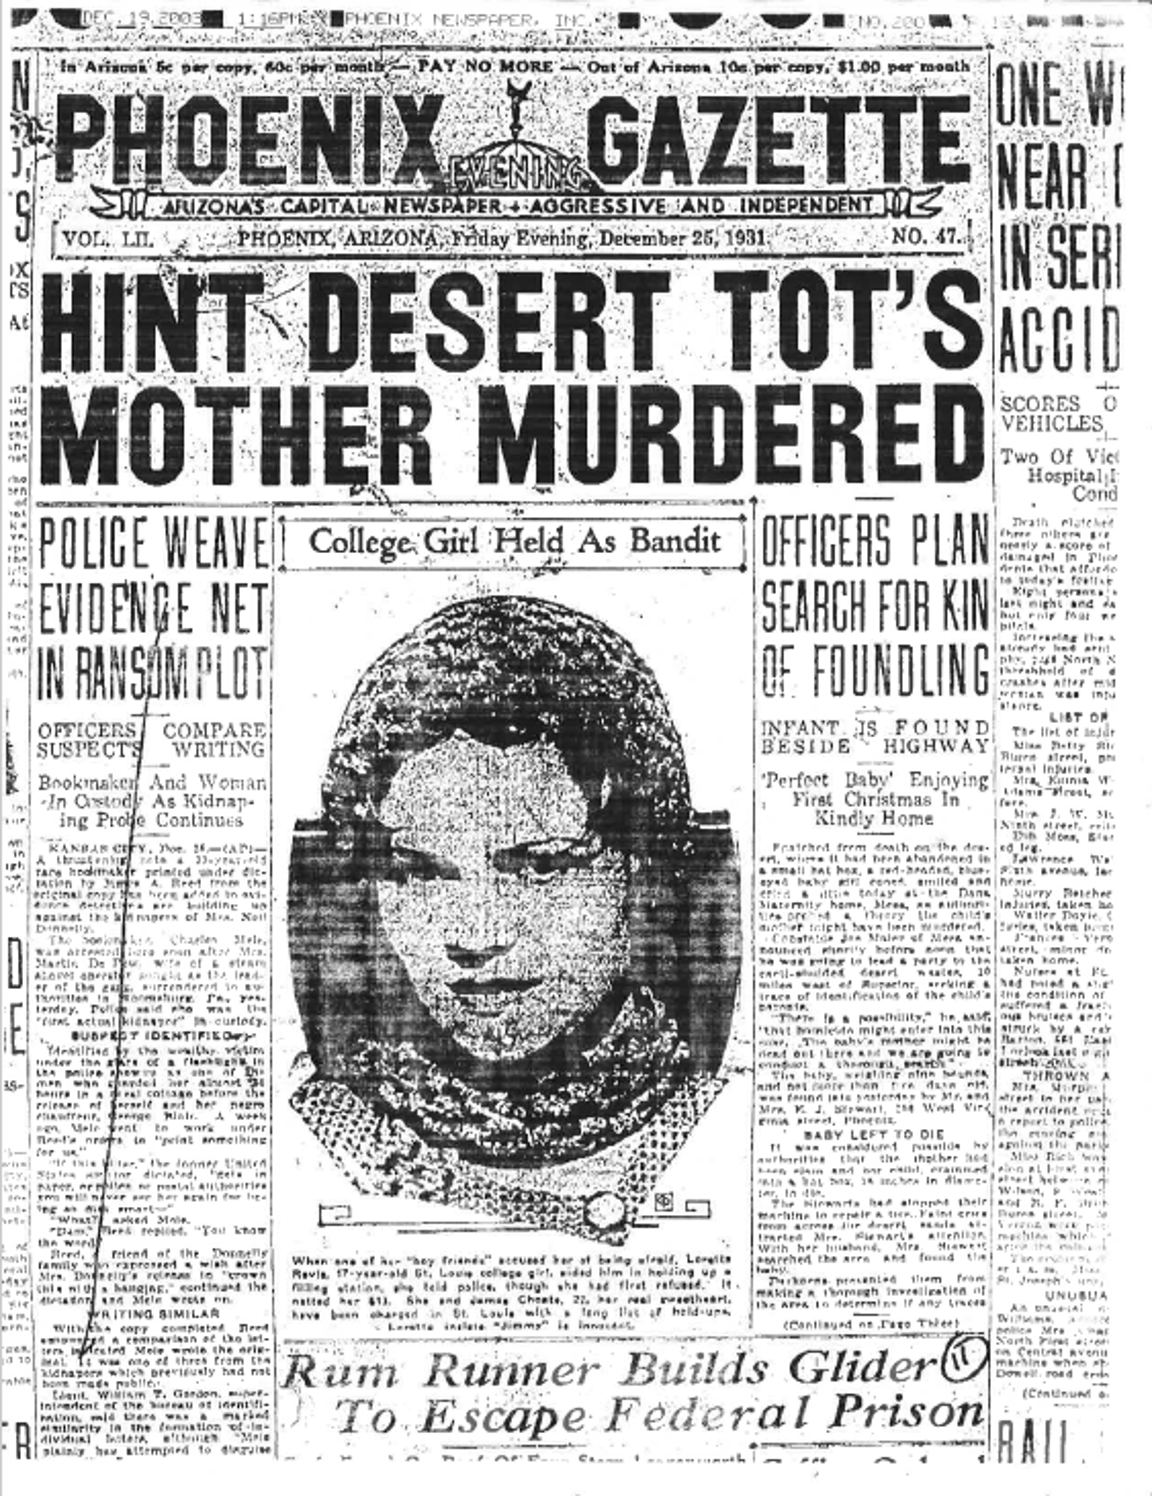 The front page of the Phoenix Gazette on Dec. 25, 1931, pointed to a hint that the Hatbox Baby's mother may have been a murder victim. It was a working theory at the time.